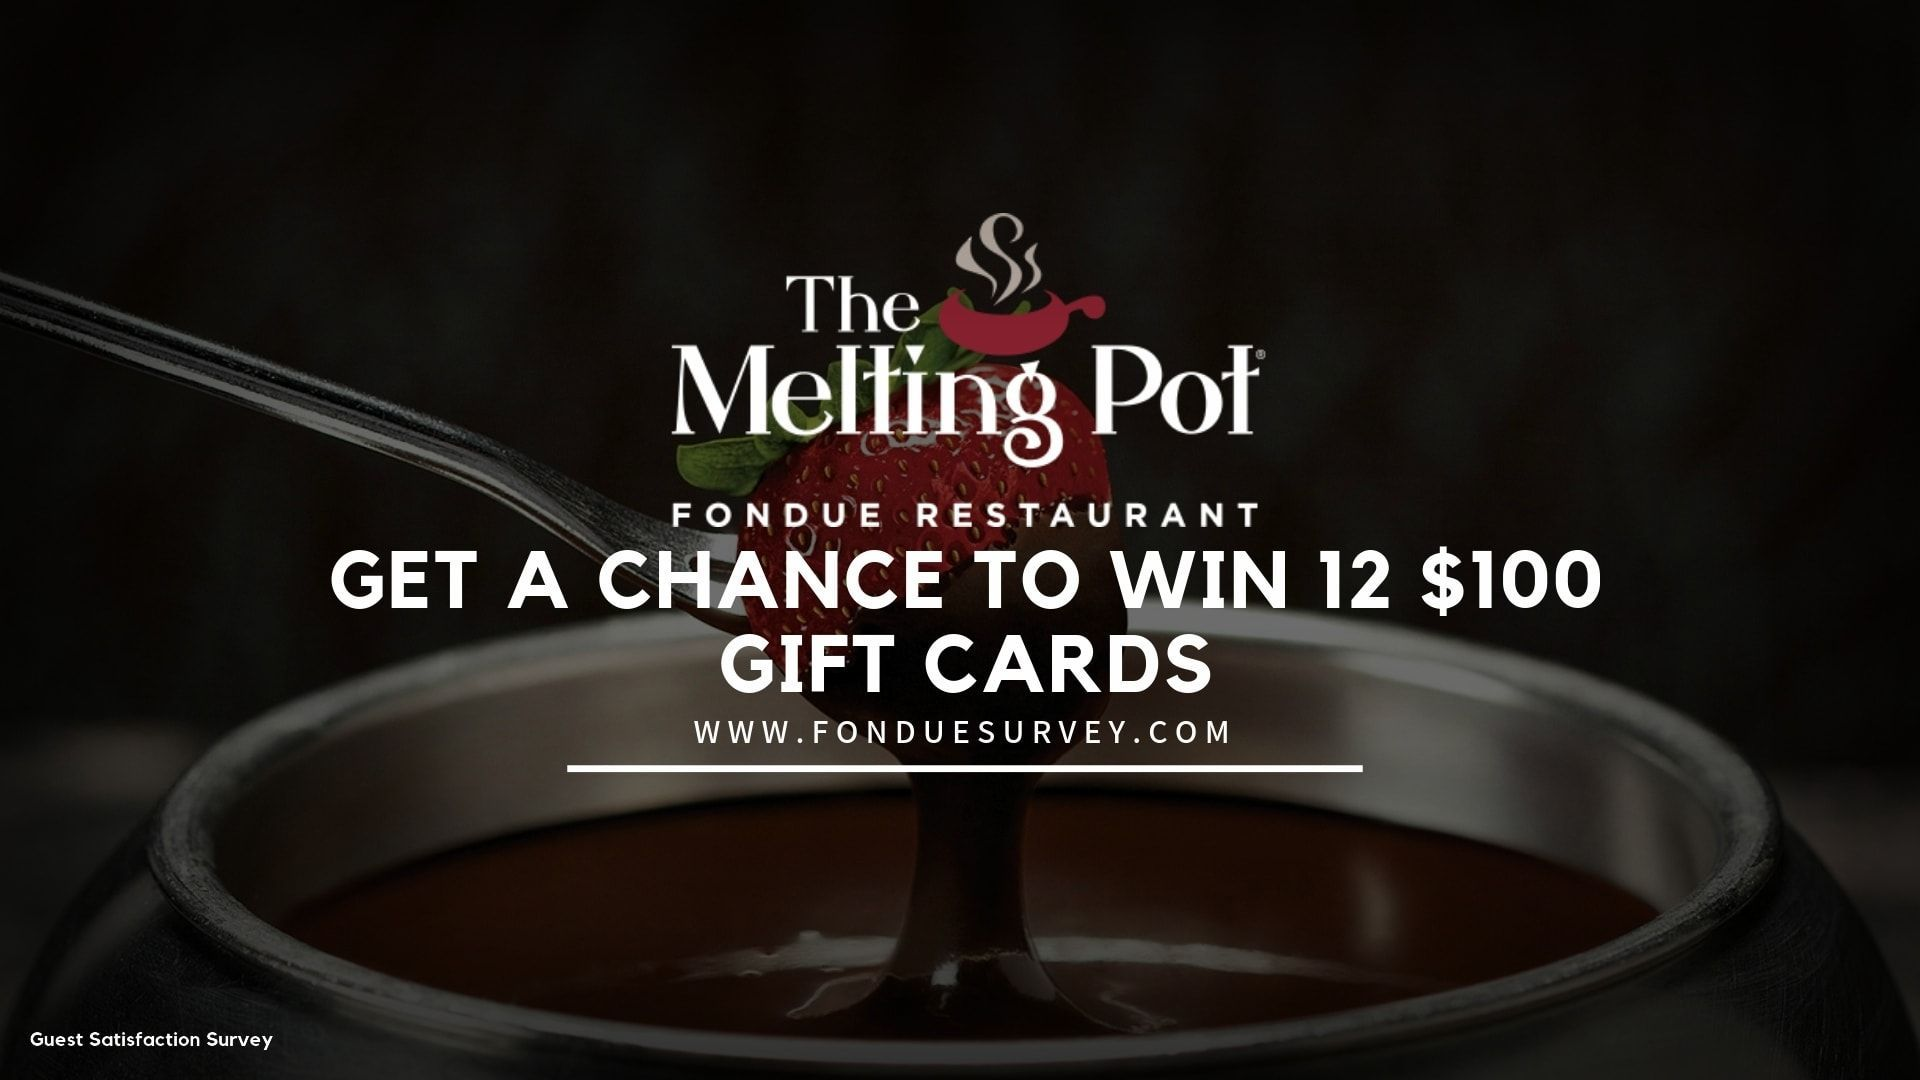 FondueSurvey- Take the Melting Point Survey & Win 12 Gift Cards Worth $100